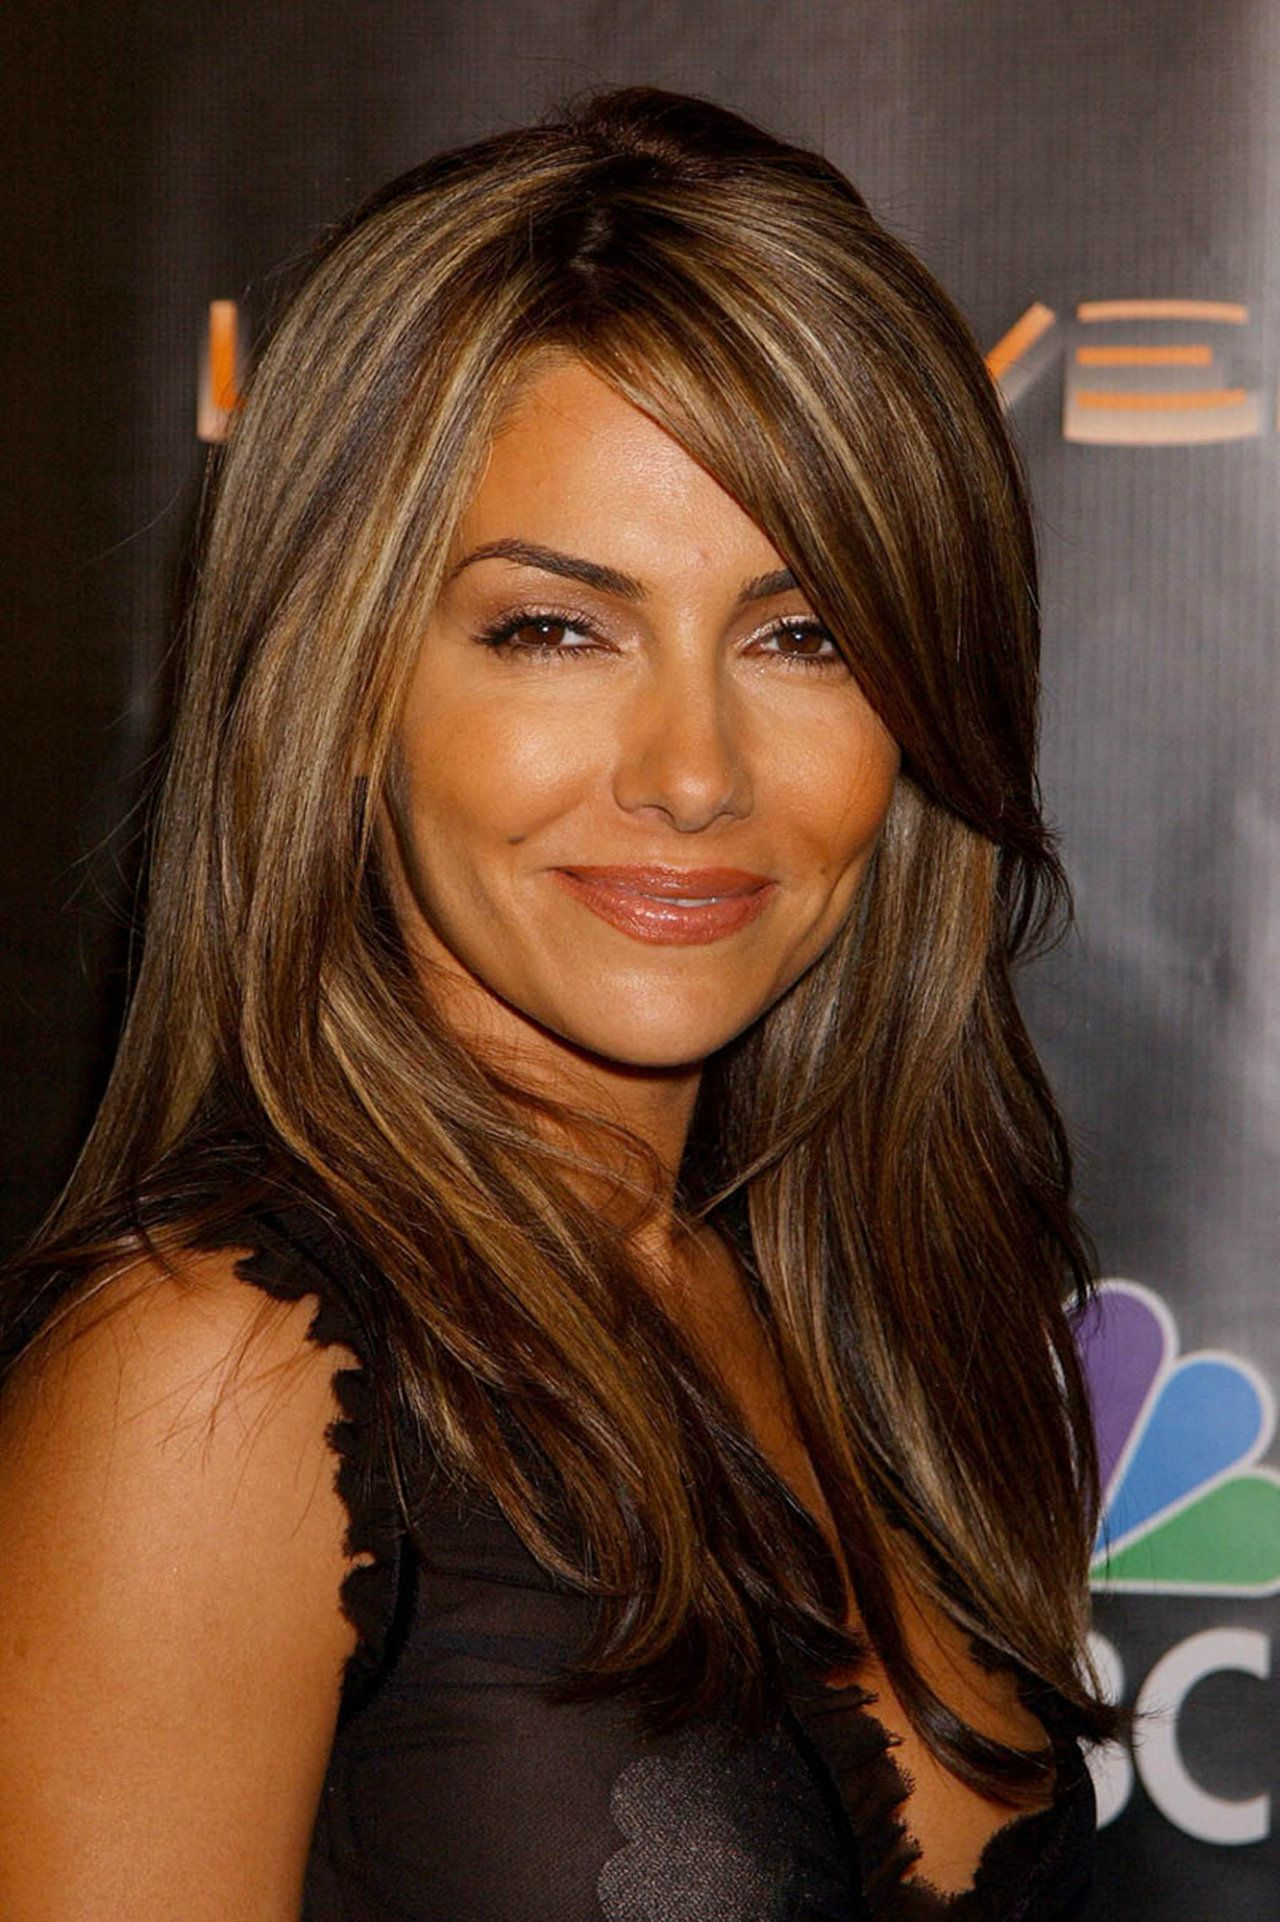 ICloud Vanessa Marcil naked (99 foto and video), Ass, Paparazzi, Feet, underwear 2017